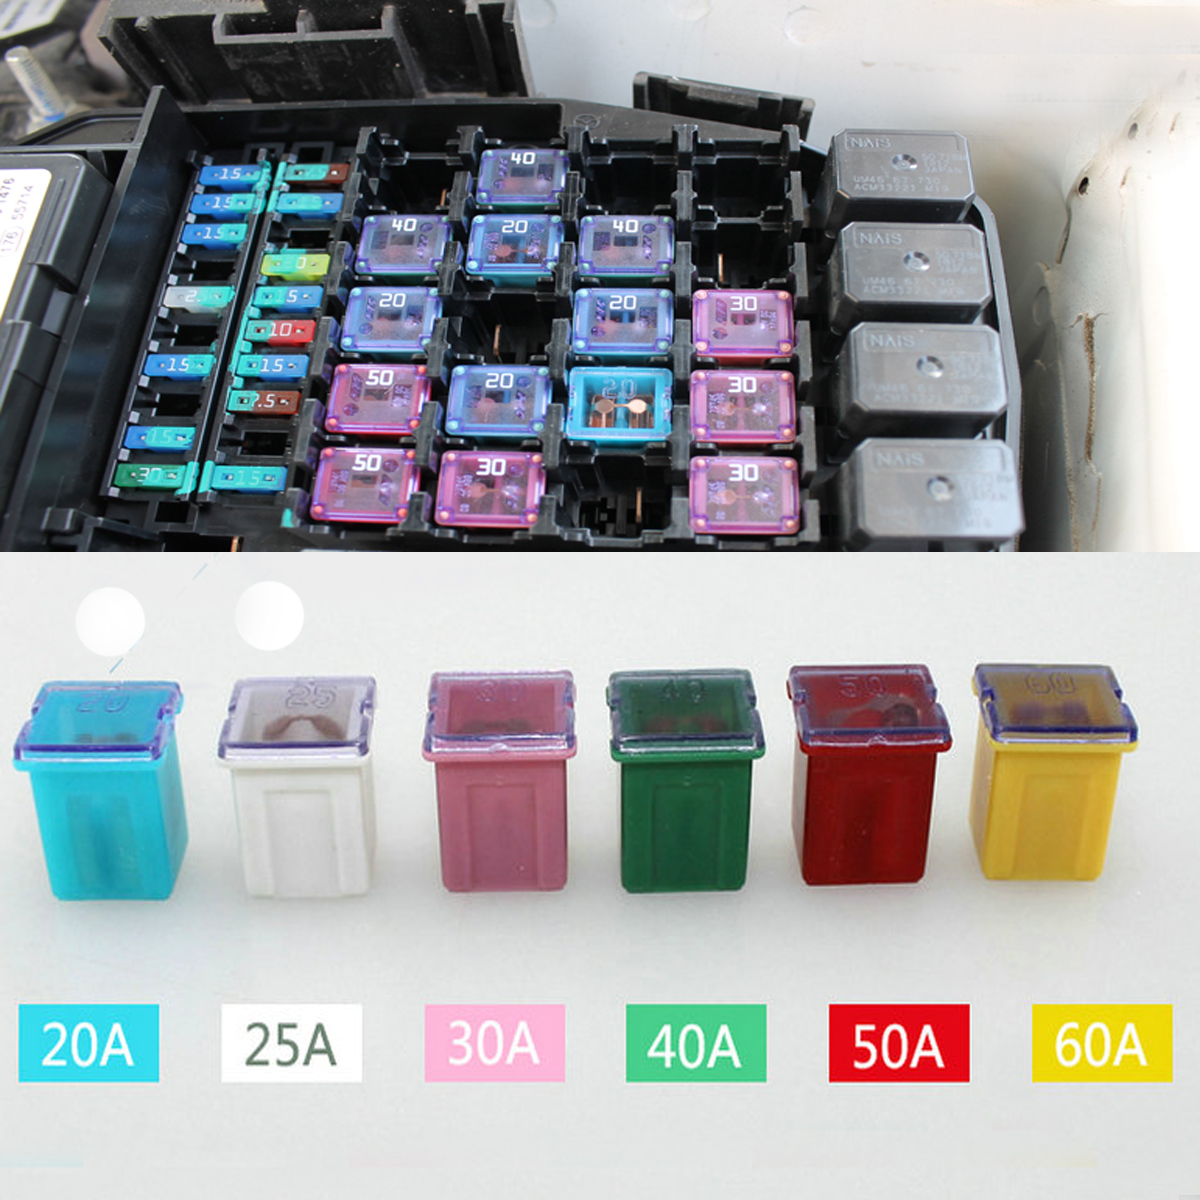 medium resolution of packing included 60 pcs fuse 10 x 60a yellow fuse 10 x 50a red fuse 10 x 40a green fuse 10 x 30a pink fuse 10 x 25a white fuse 10 x 20a blue fuse